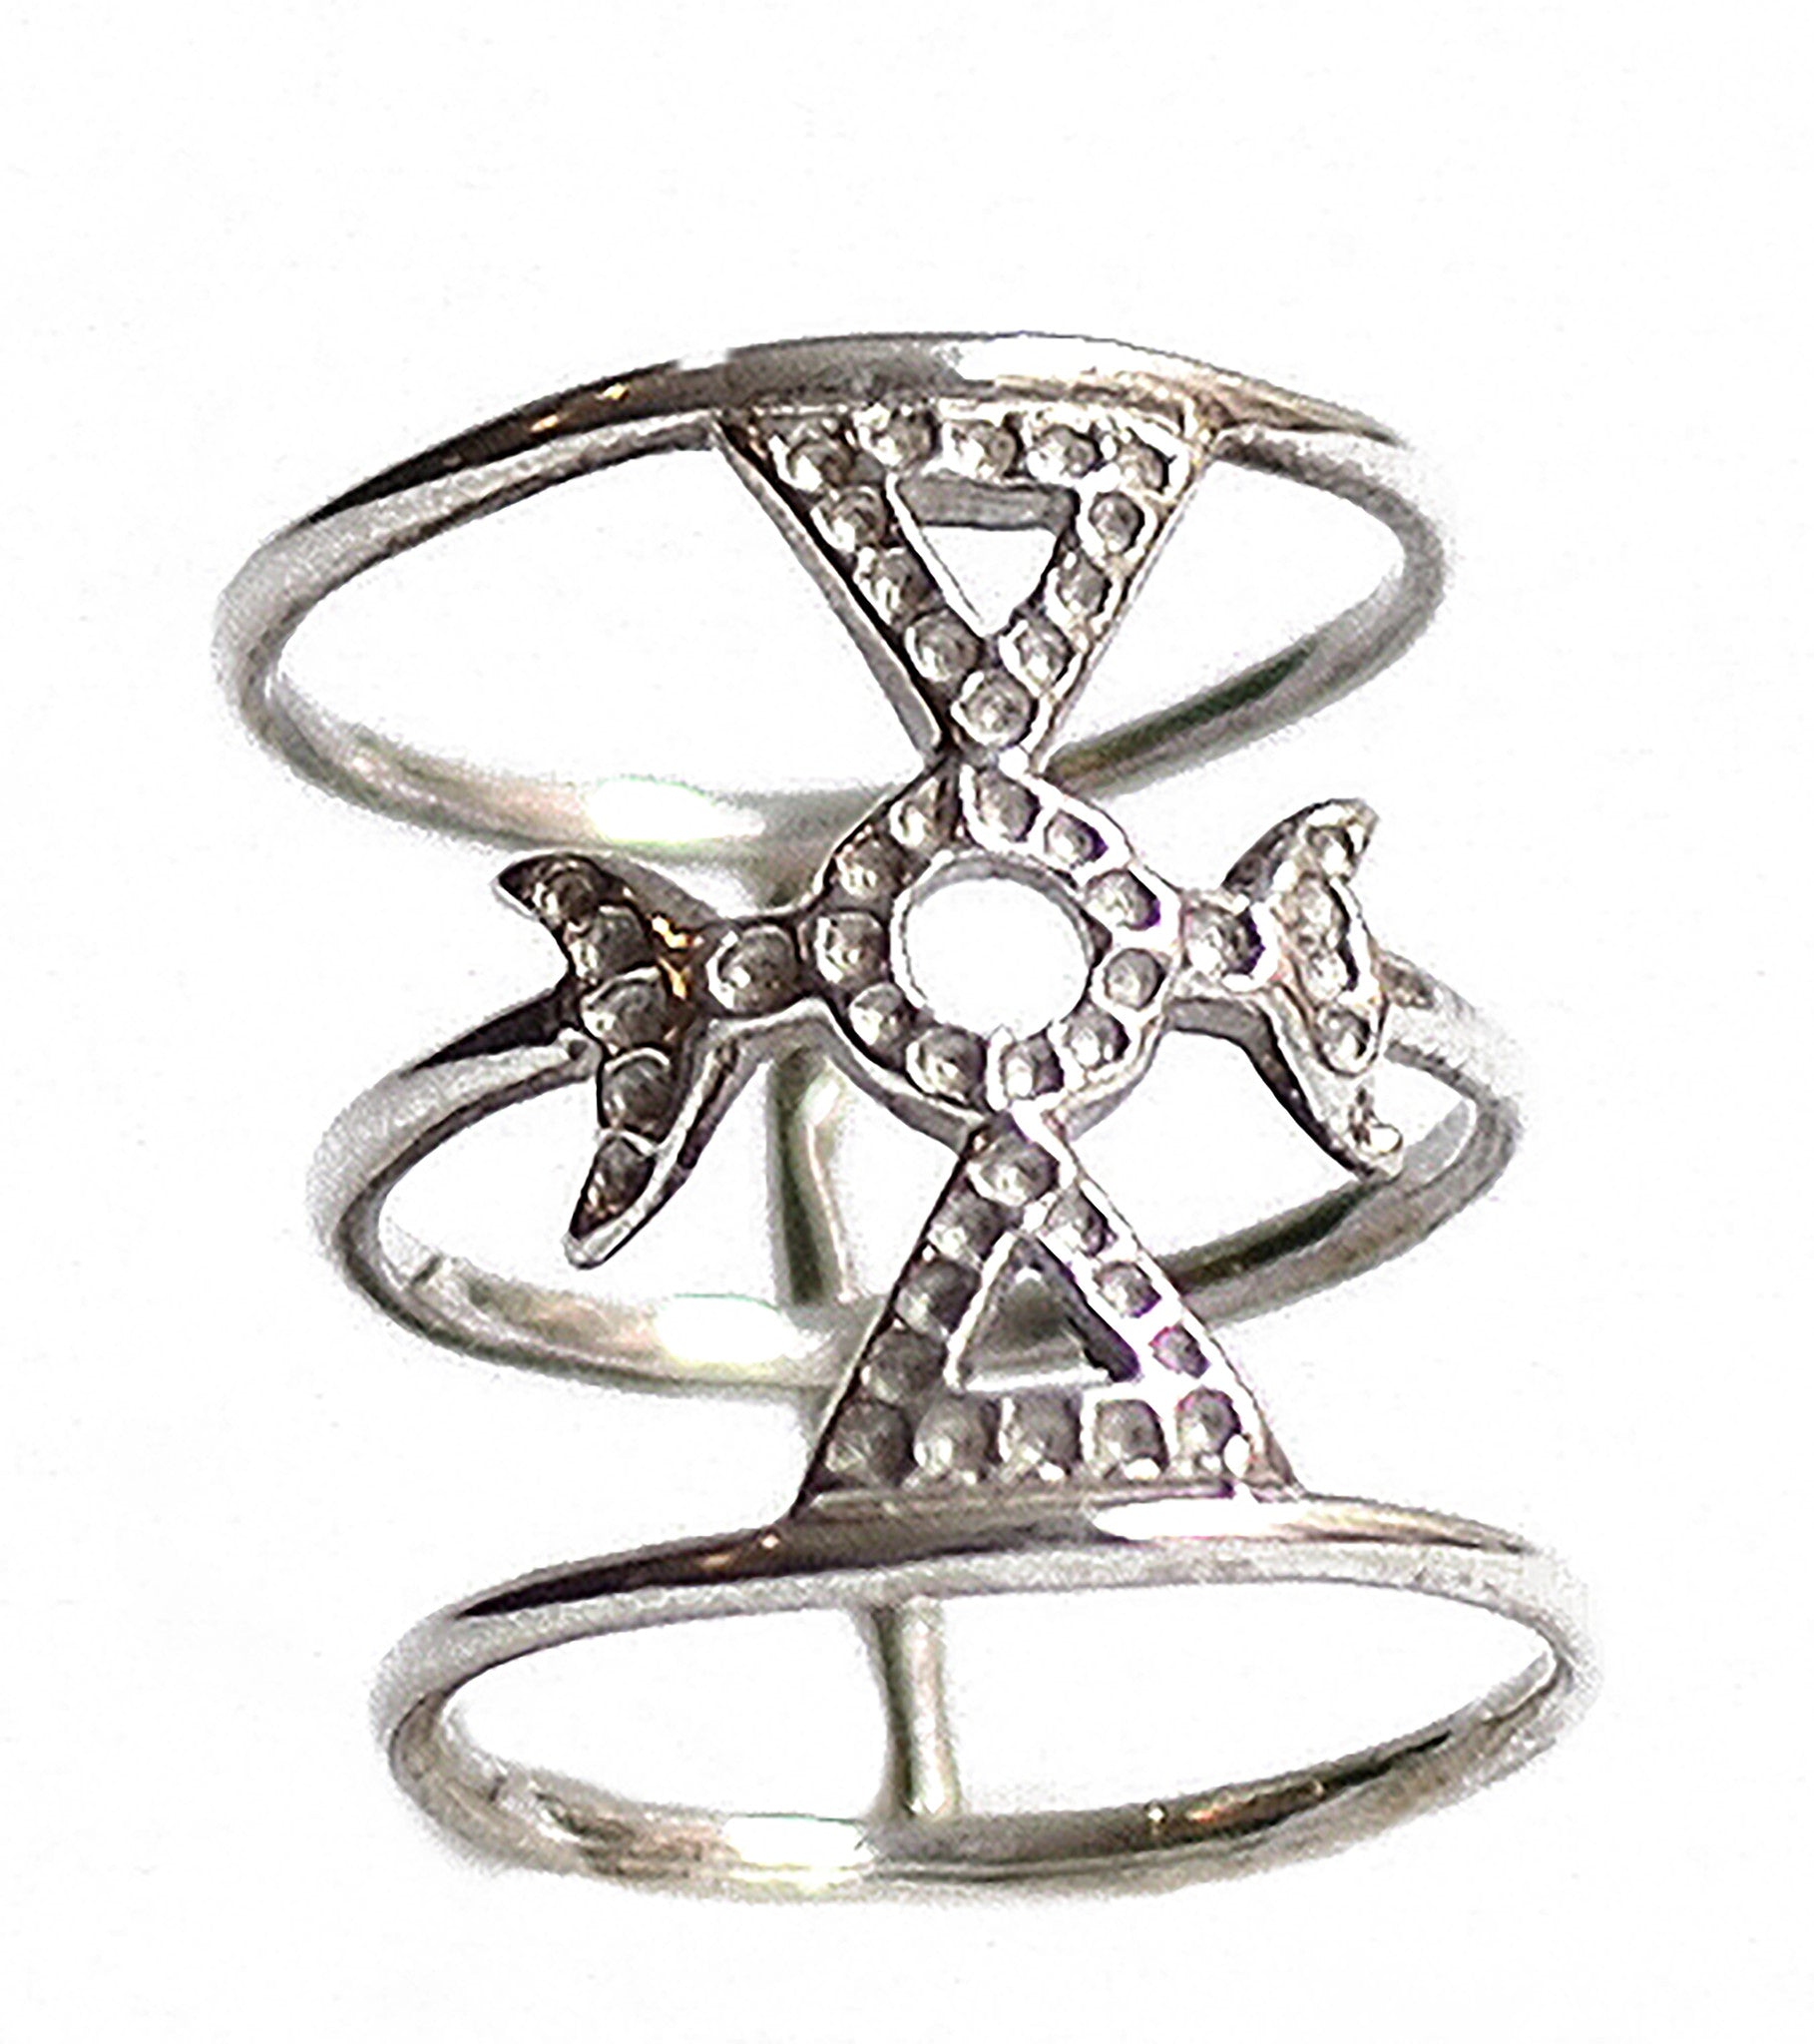 Auspicious Moon Ring Wendy Nichol Fine Jewelry Designer Barneys Barney's Handmade in NYC solid sterling Silver Mason Symbol Crescent Moon cut out triangle Cage Witch Magic Magick Ring